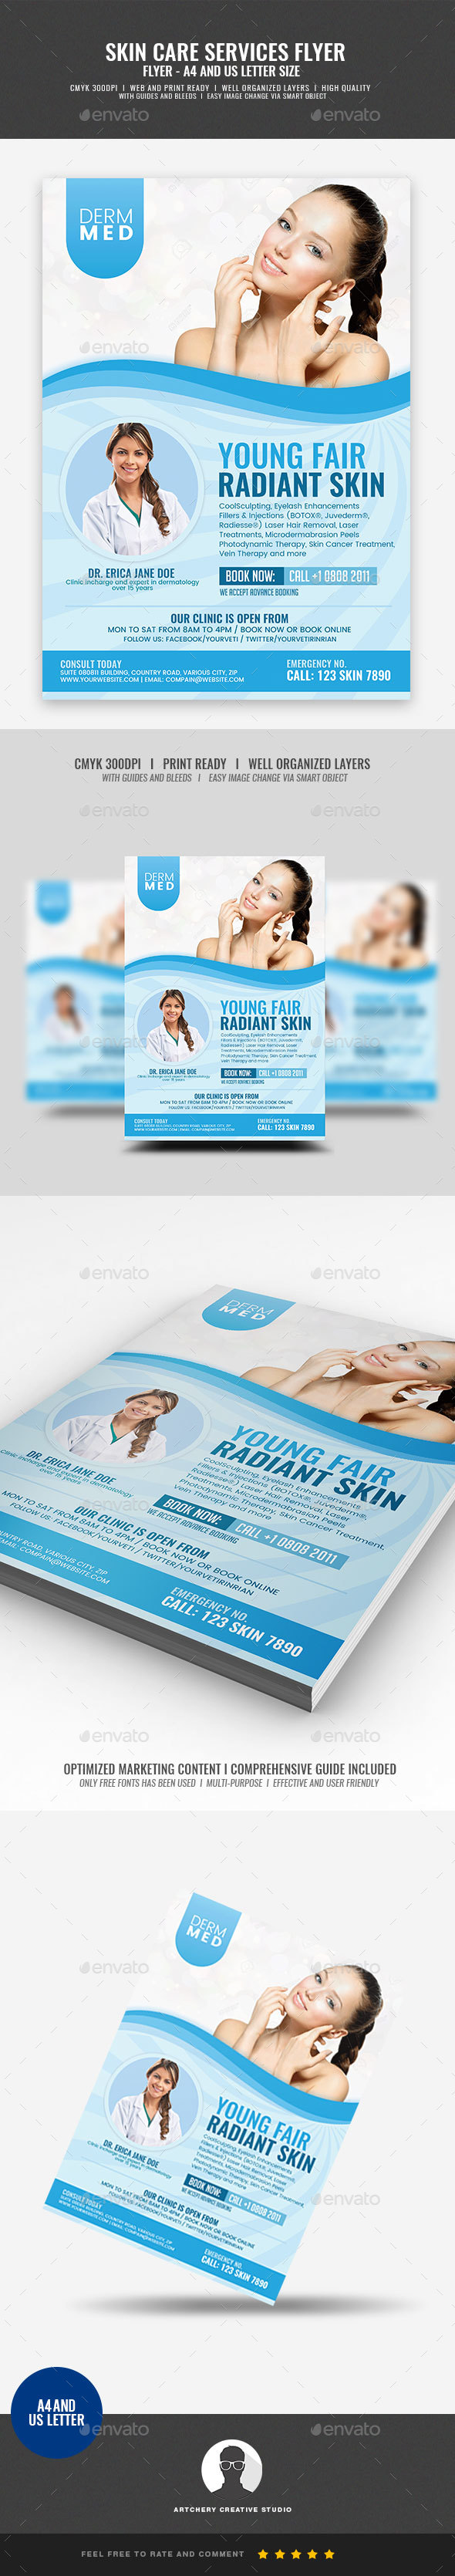 GraphicRiver Skin Care Services Flyer 21046298